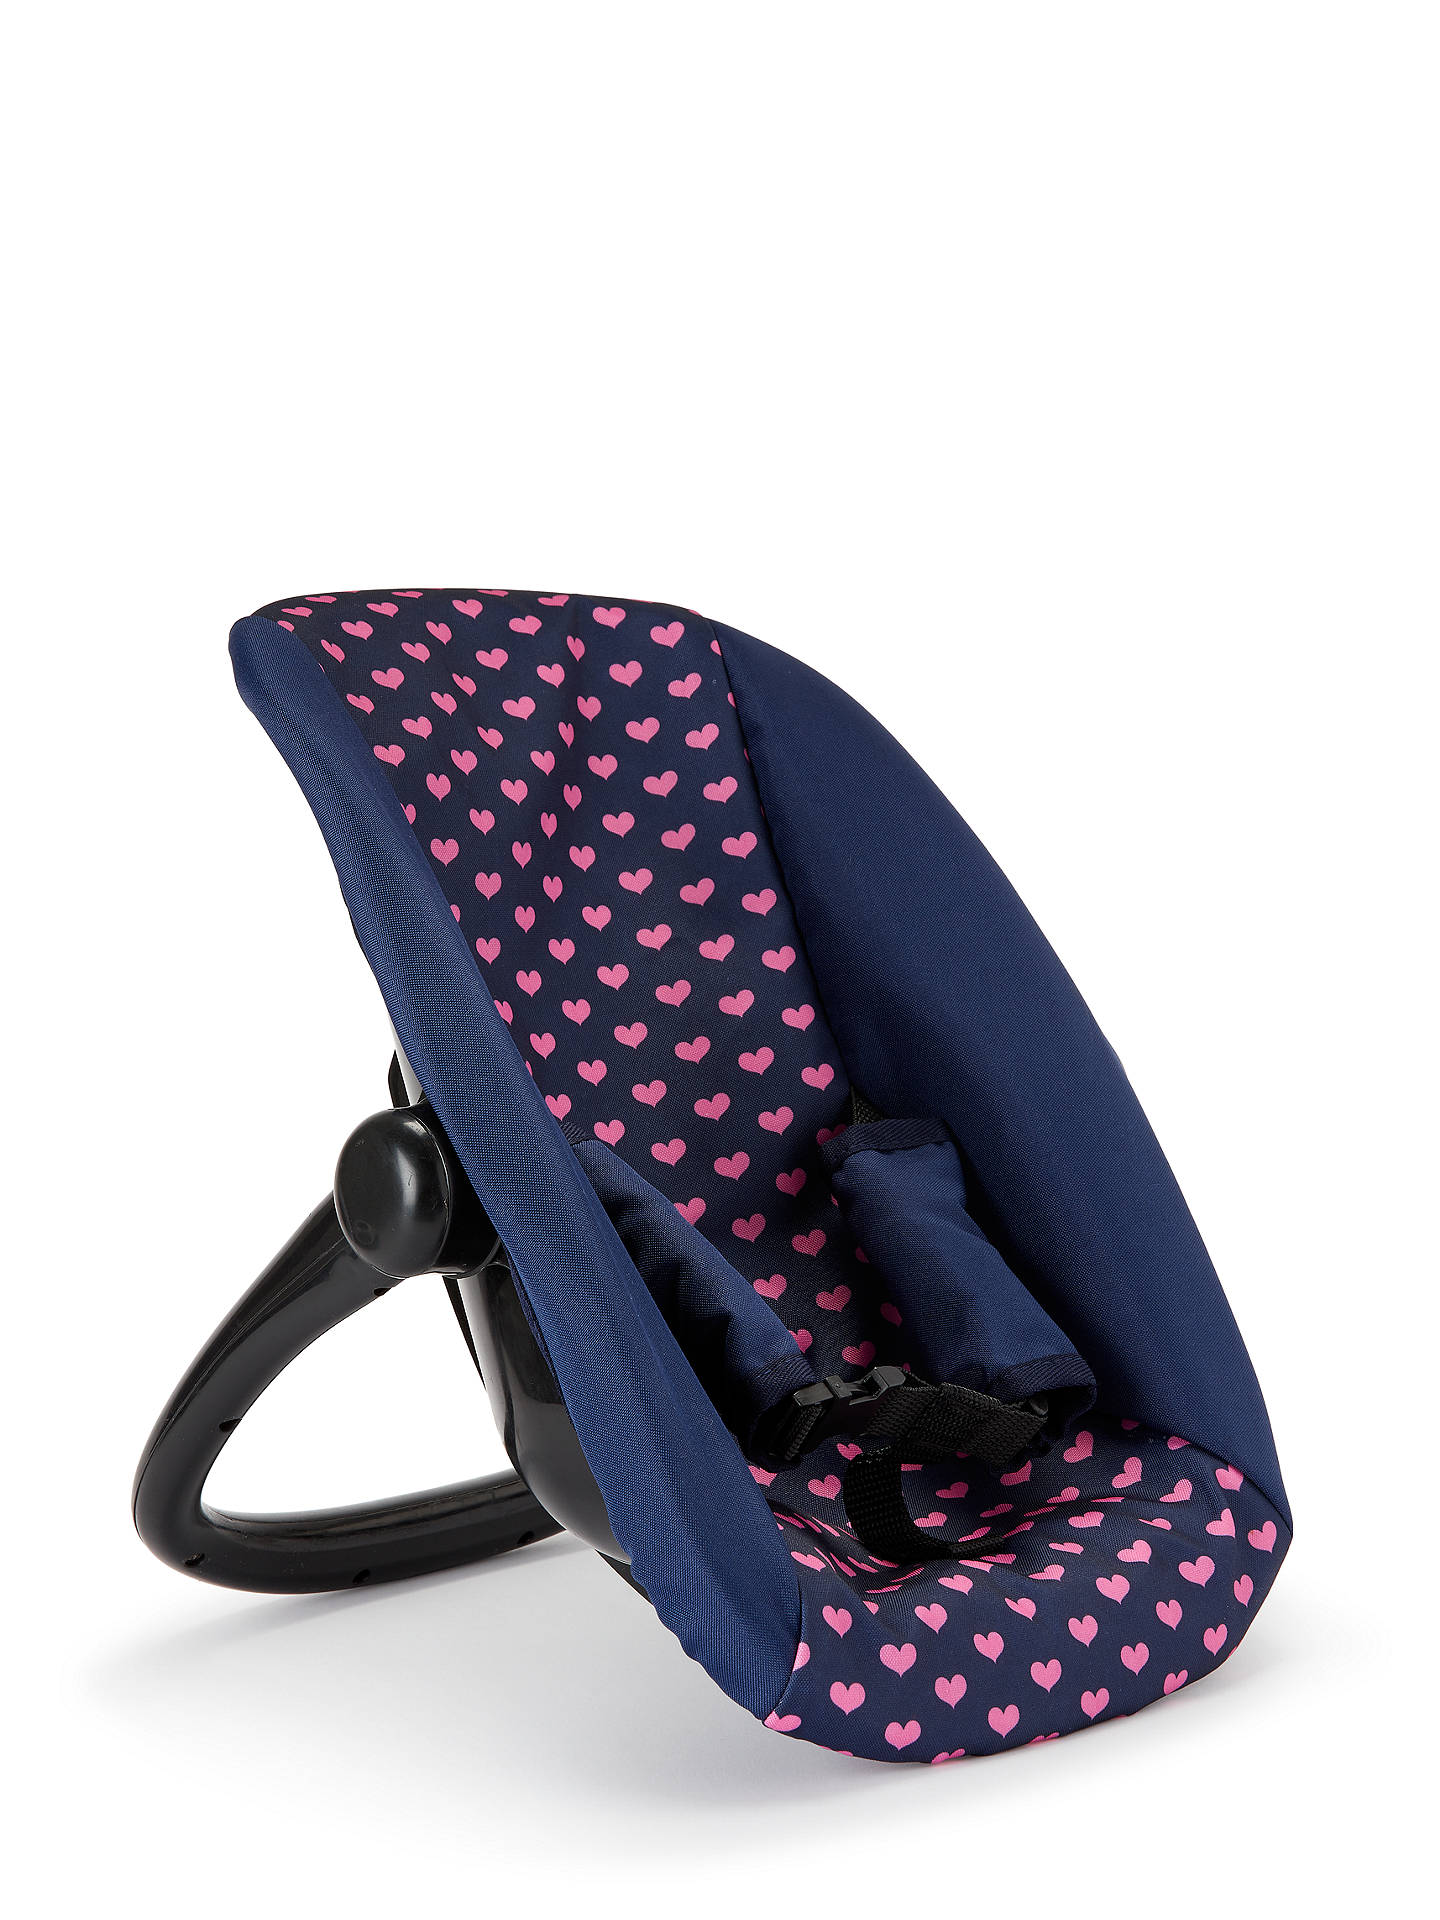 BuyJohn Lewis Partners Baby Doll Car Seat Online At Johnlewis